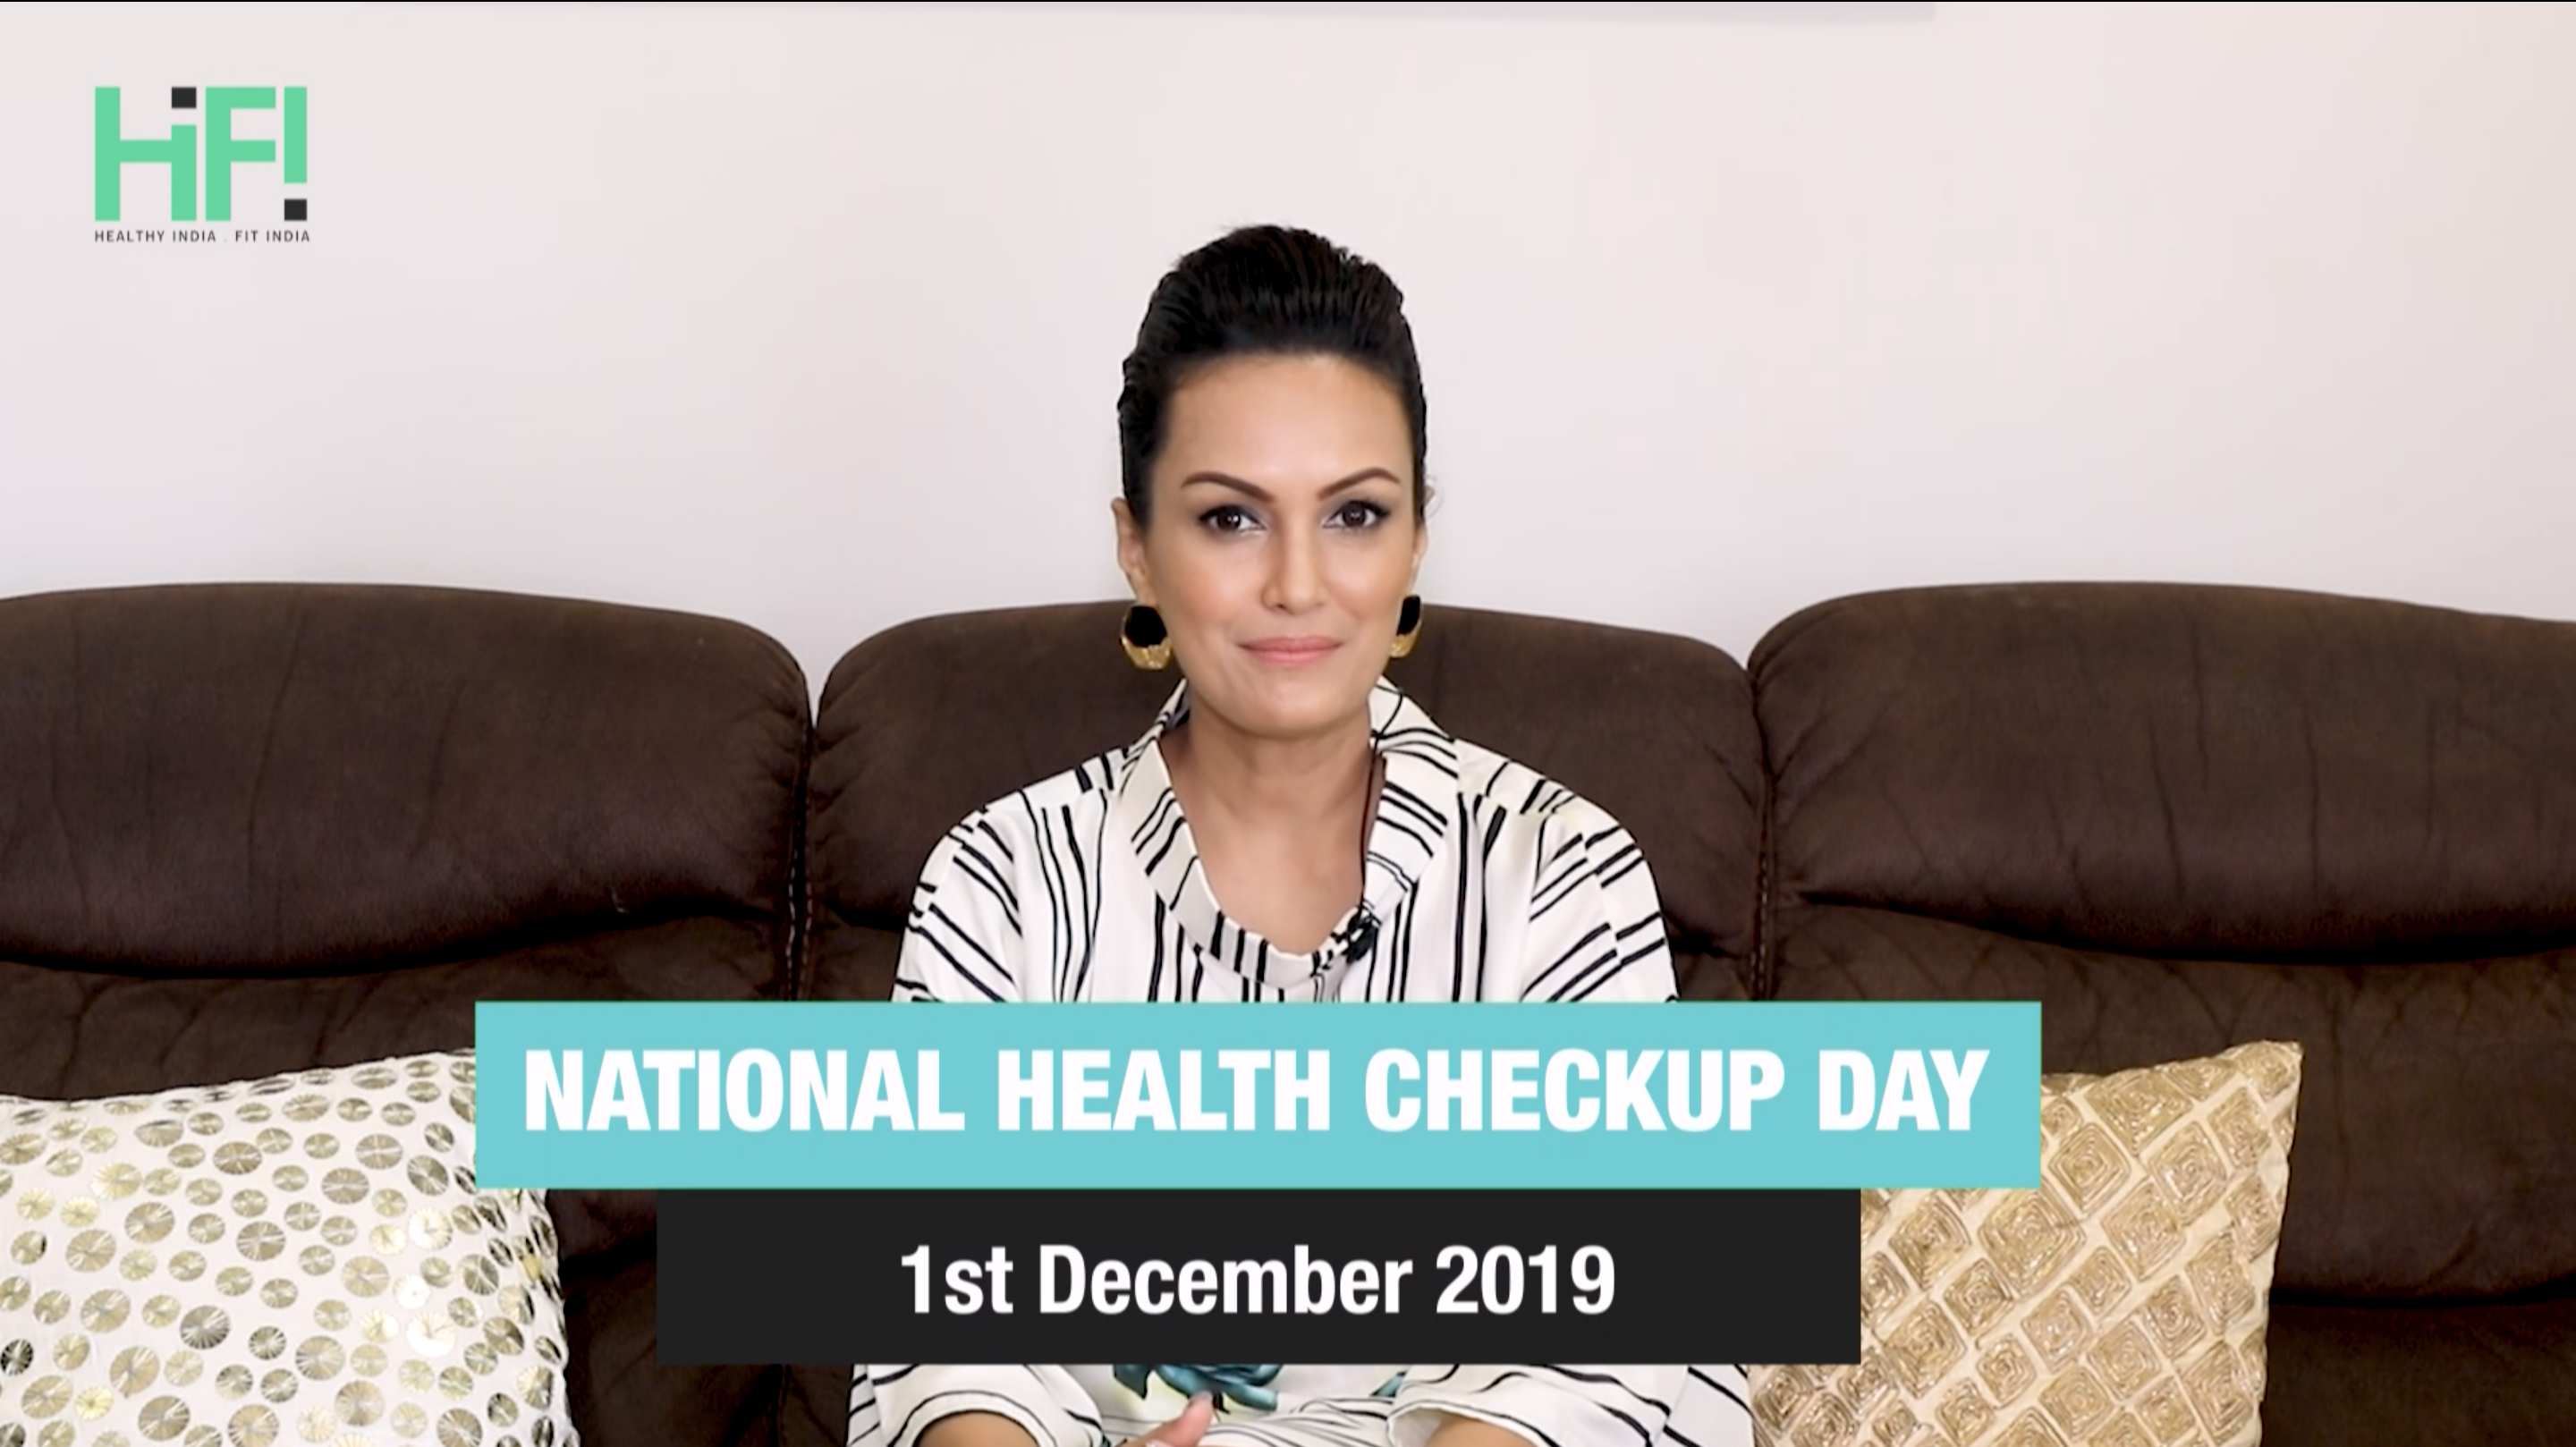 Hi-Fi new mom Nisha Rawal encourages to get your health checkup done on December 1